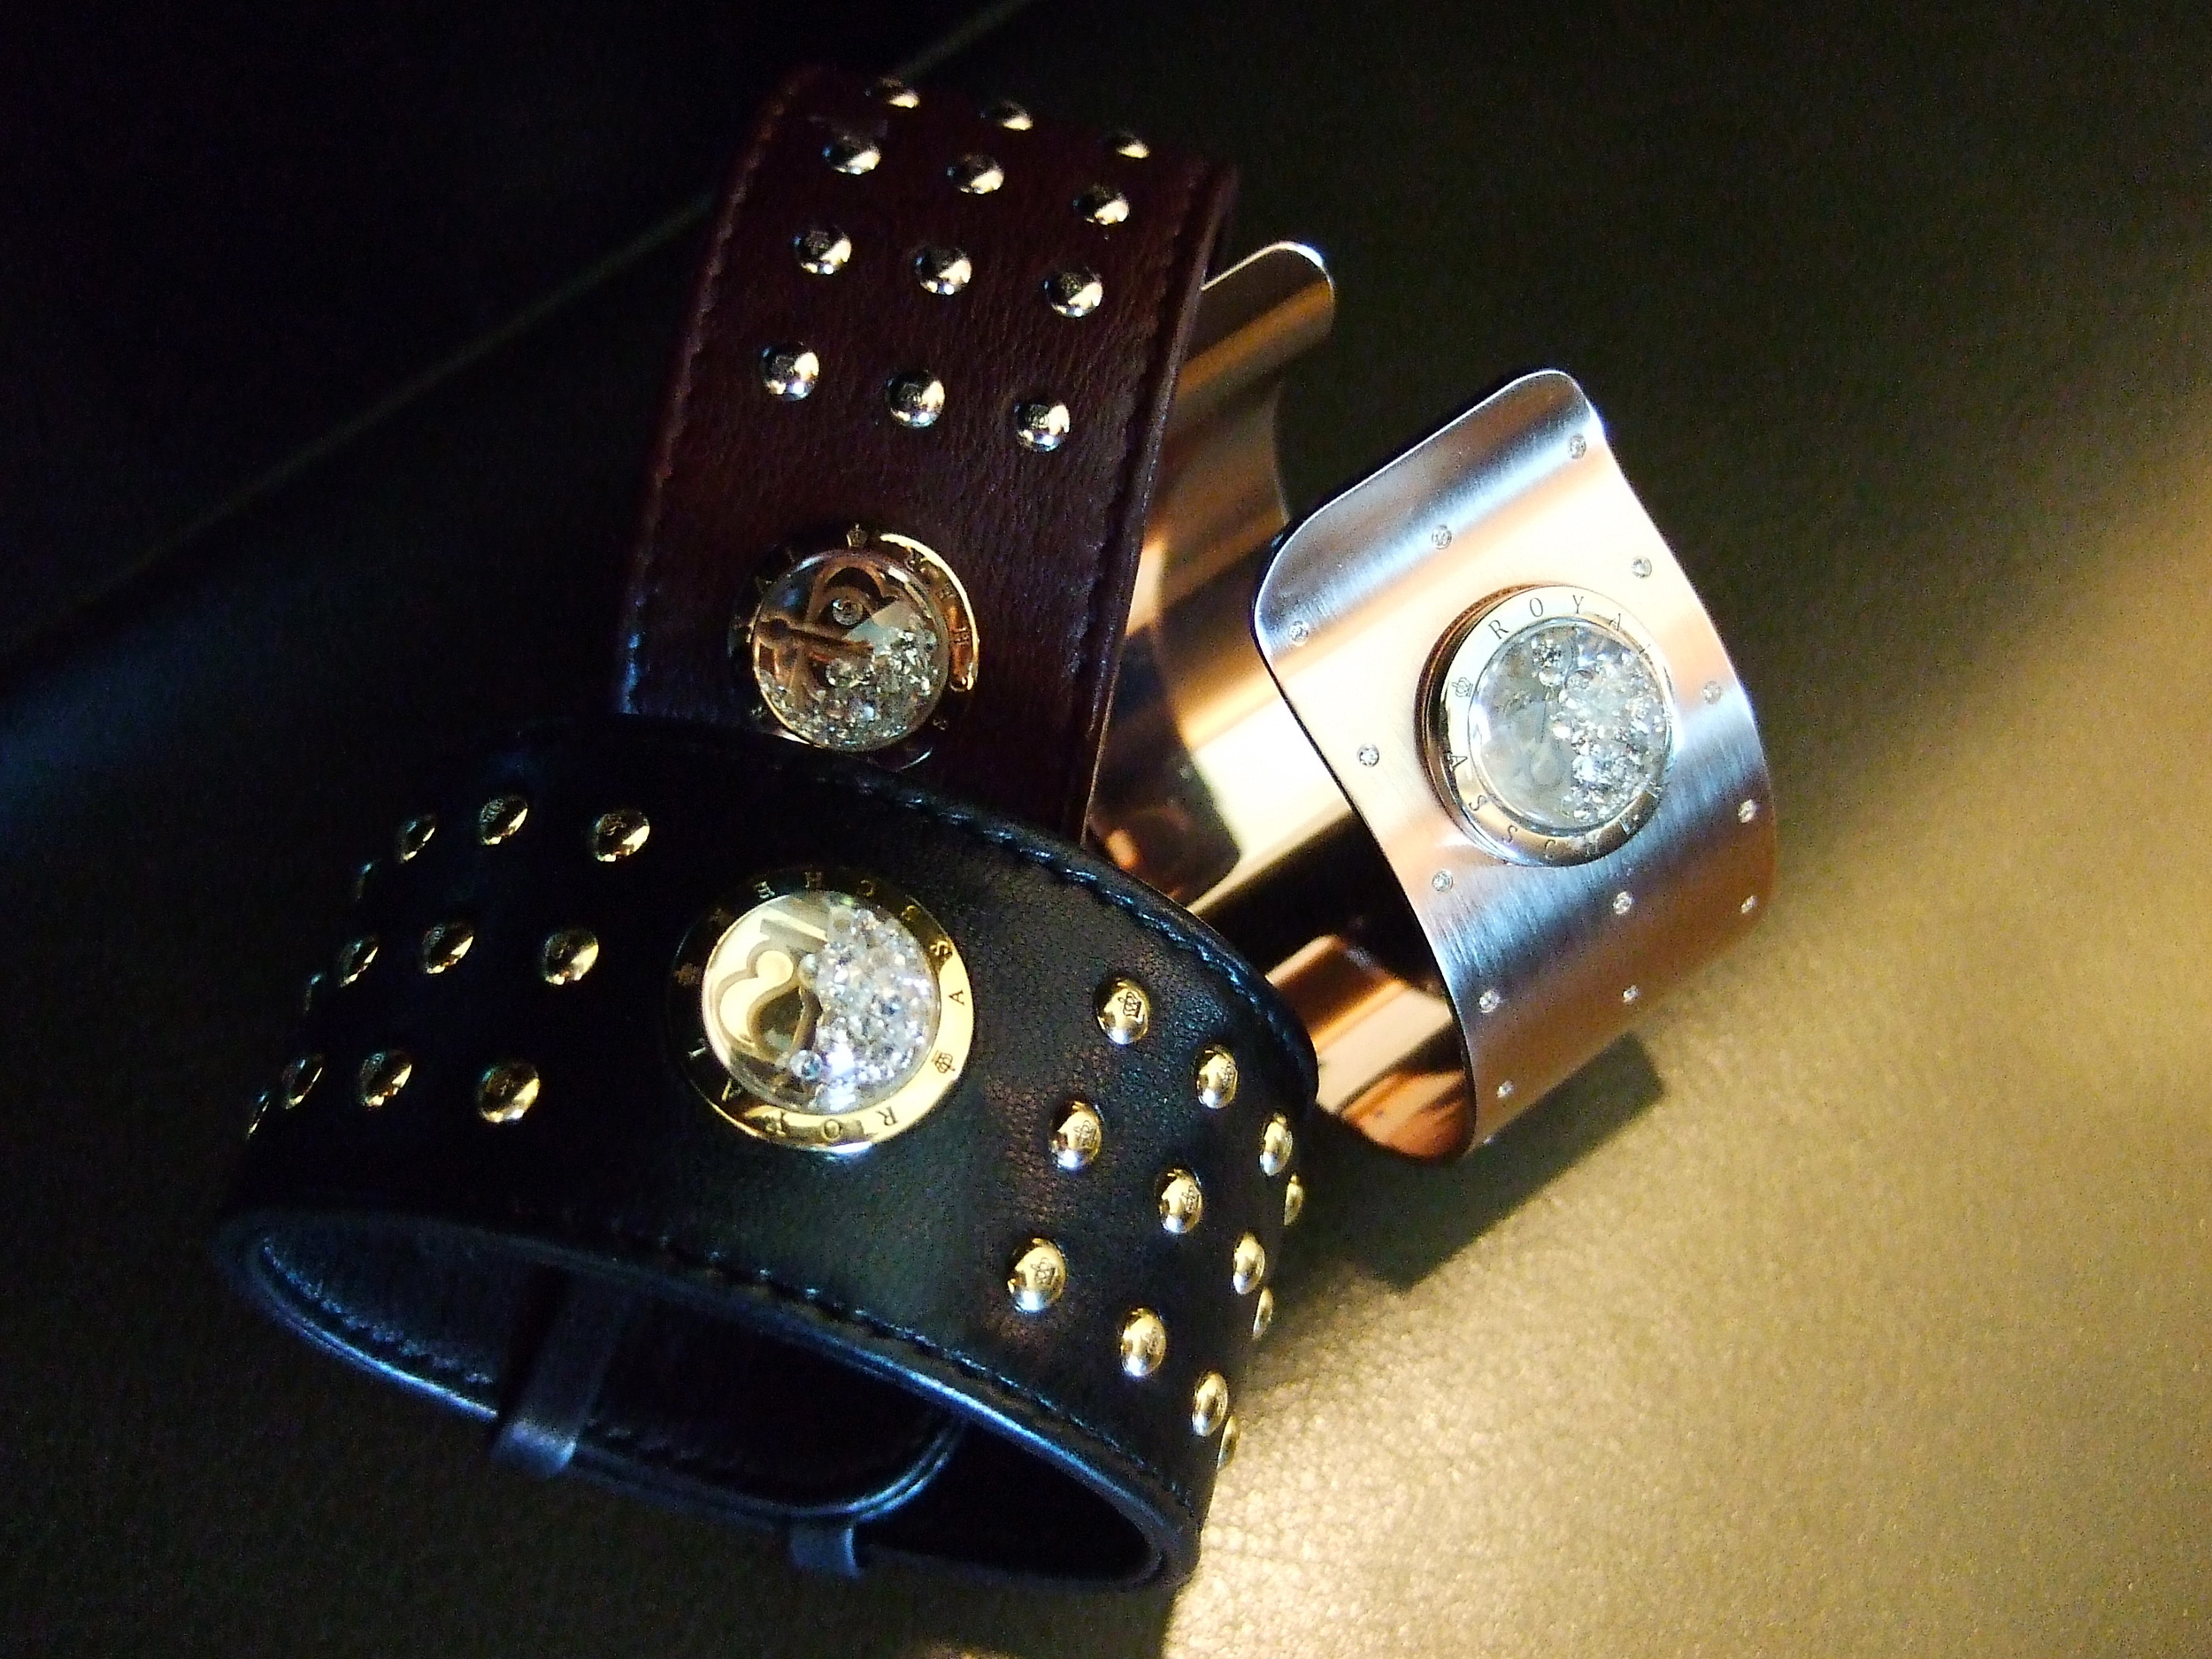 Latest from Royal Asscher & Reena Ahluwalia - Floating-diamonds cuffs in leather and plated gold!